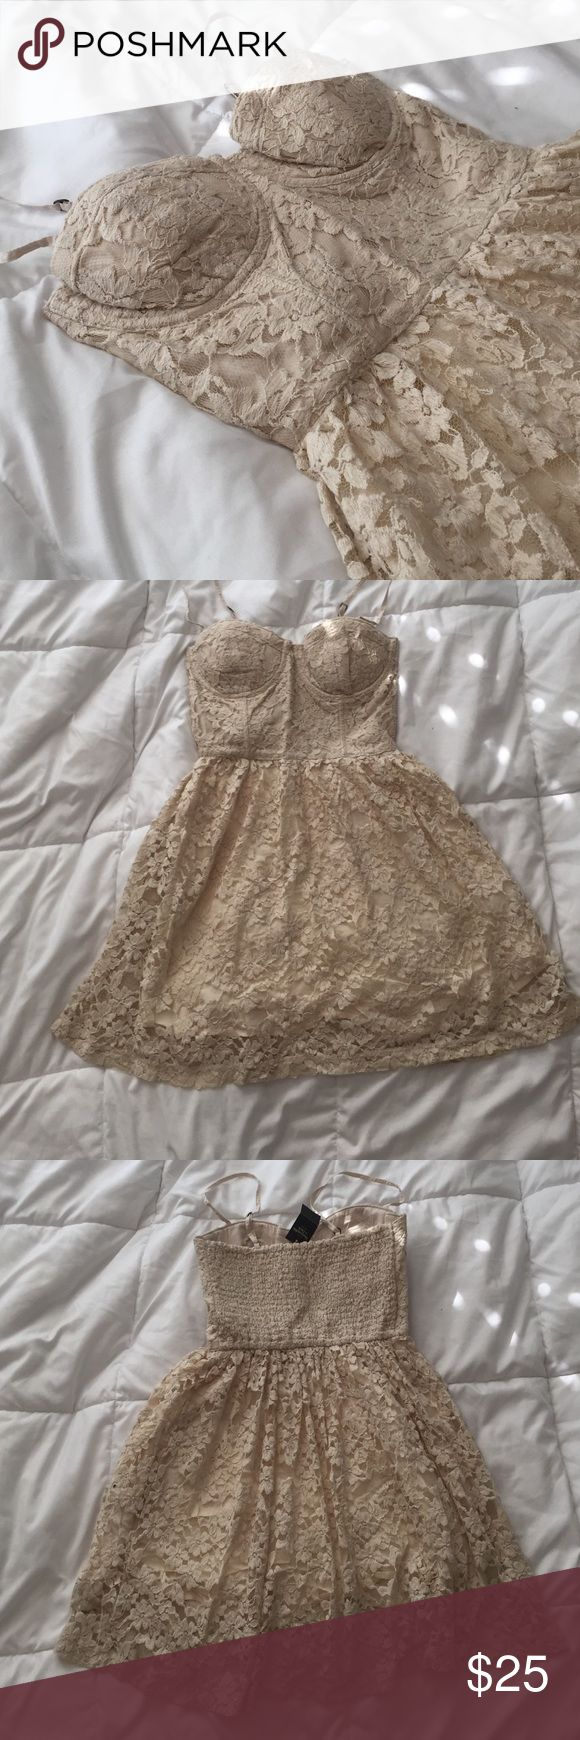 Abercrombie and Fitch lace bustier dress Abercrombie and Fitch bustier lace dress. Brand new with tags. Abercrombie & Fitch Dresses Mini